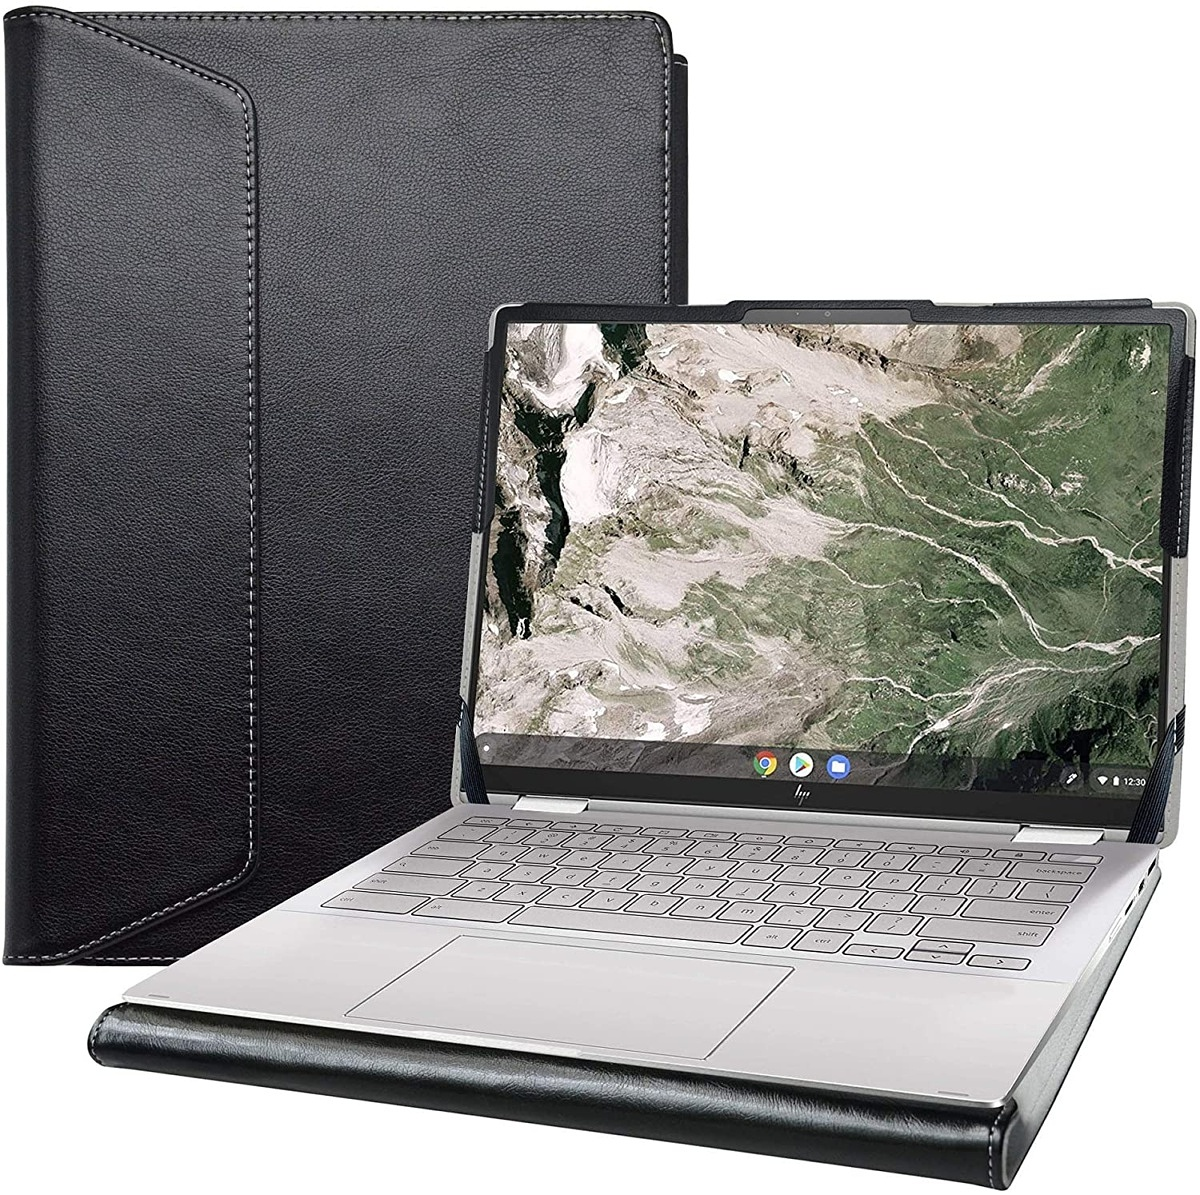 Alapmk Protective Cover